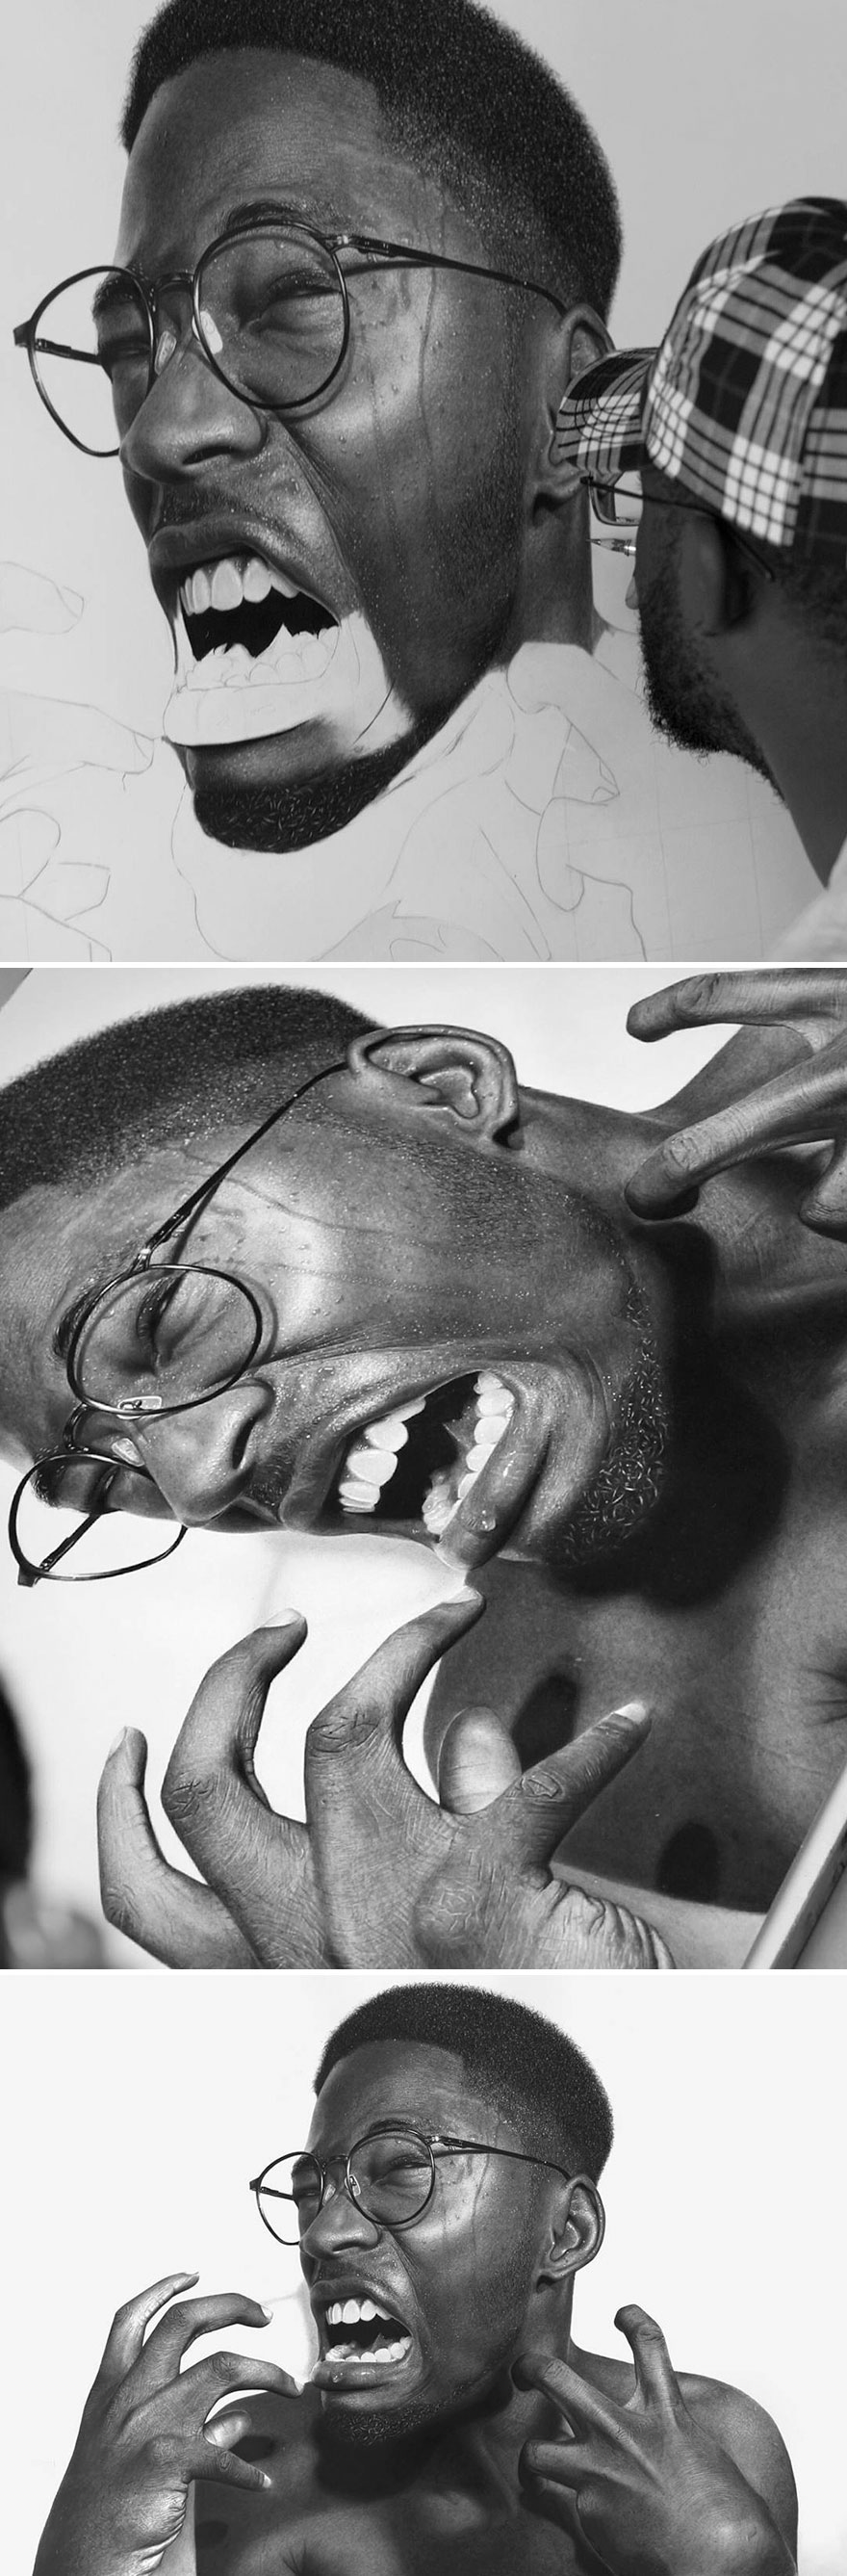 hyperrealism-pencil-portraits-arinze-stanley-7-58d28c15785ac__880-2